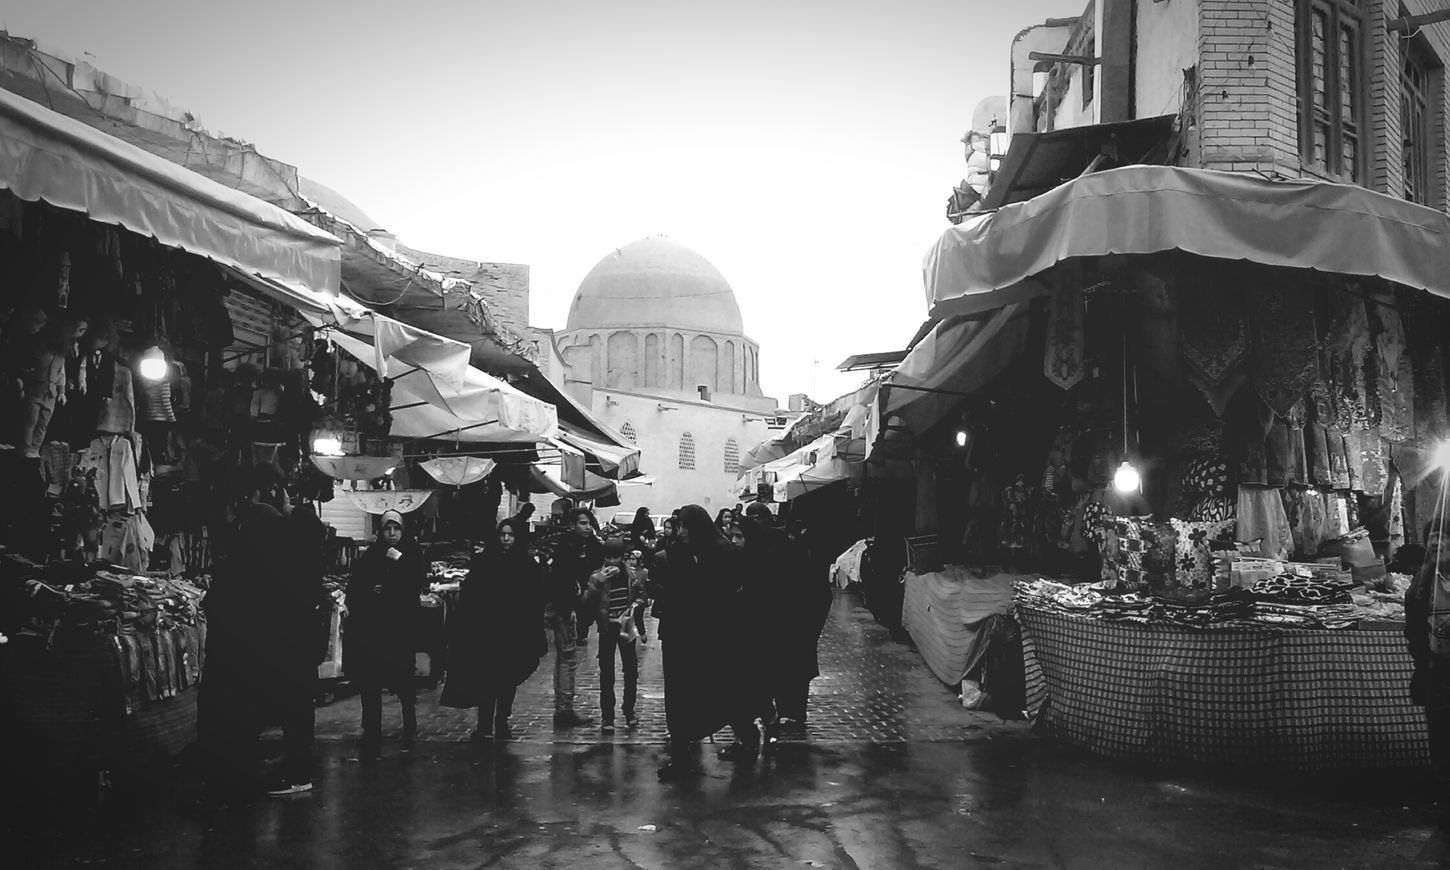 The Oldest Marketplace In Isfahan , And Of Course The People .. City Outdoors Architecture People Day Blackandwhite Black And White Black&white Black & White Black And White Photography Iran Isfahan Esfahan Lifestory Soul Should Be Here Winter Bazaar MJ028